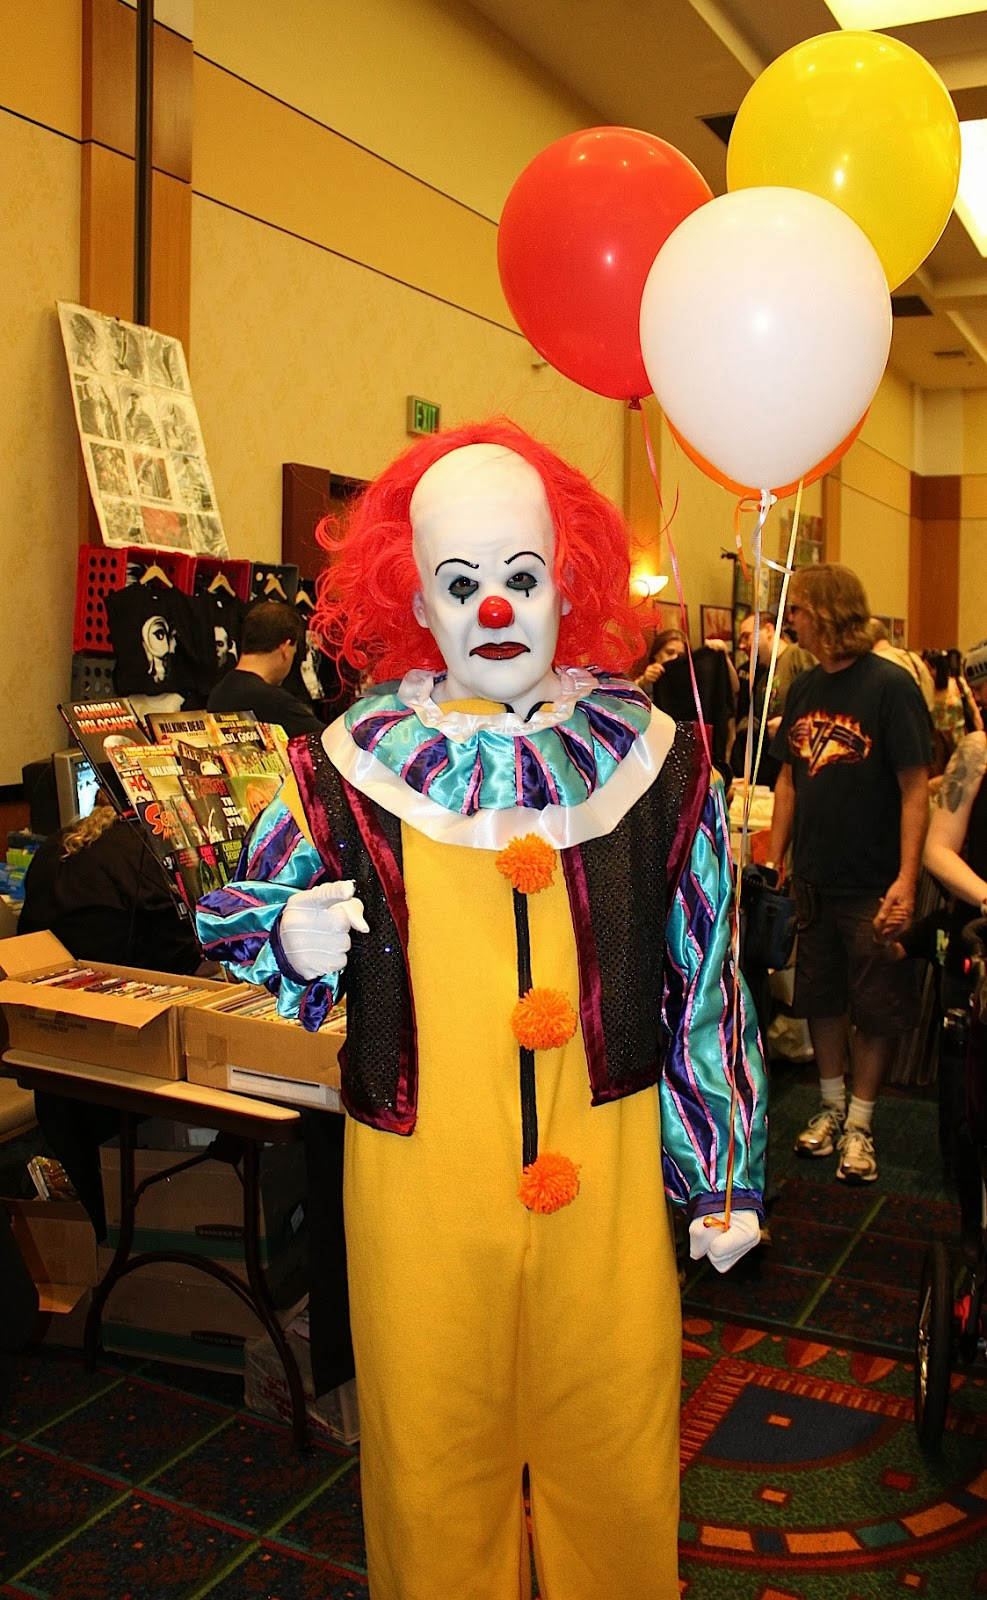 Pennywise the Clown Michael Jackson Thriller Video Dance